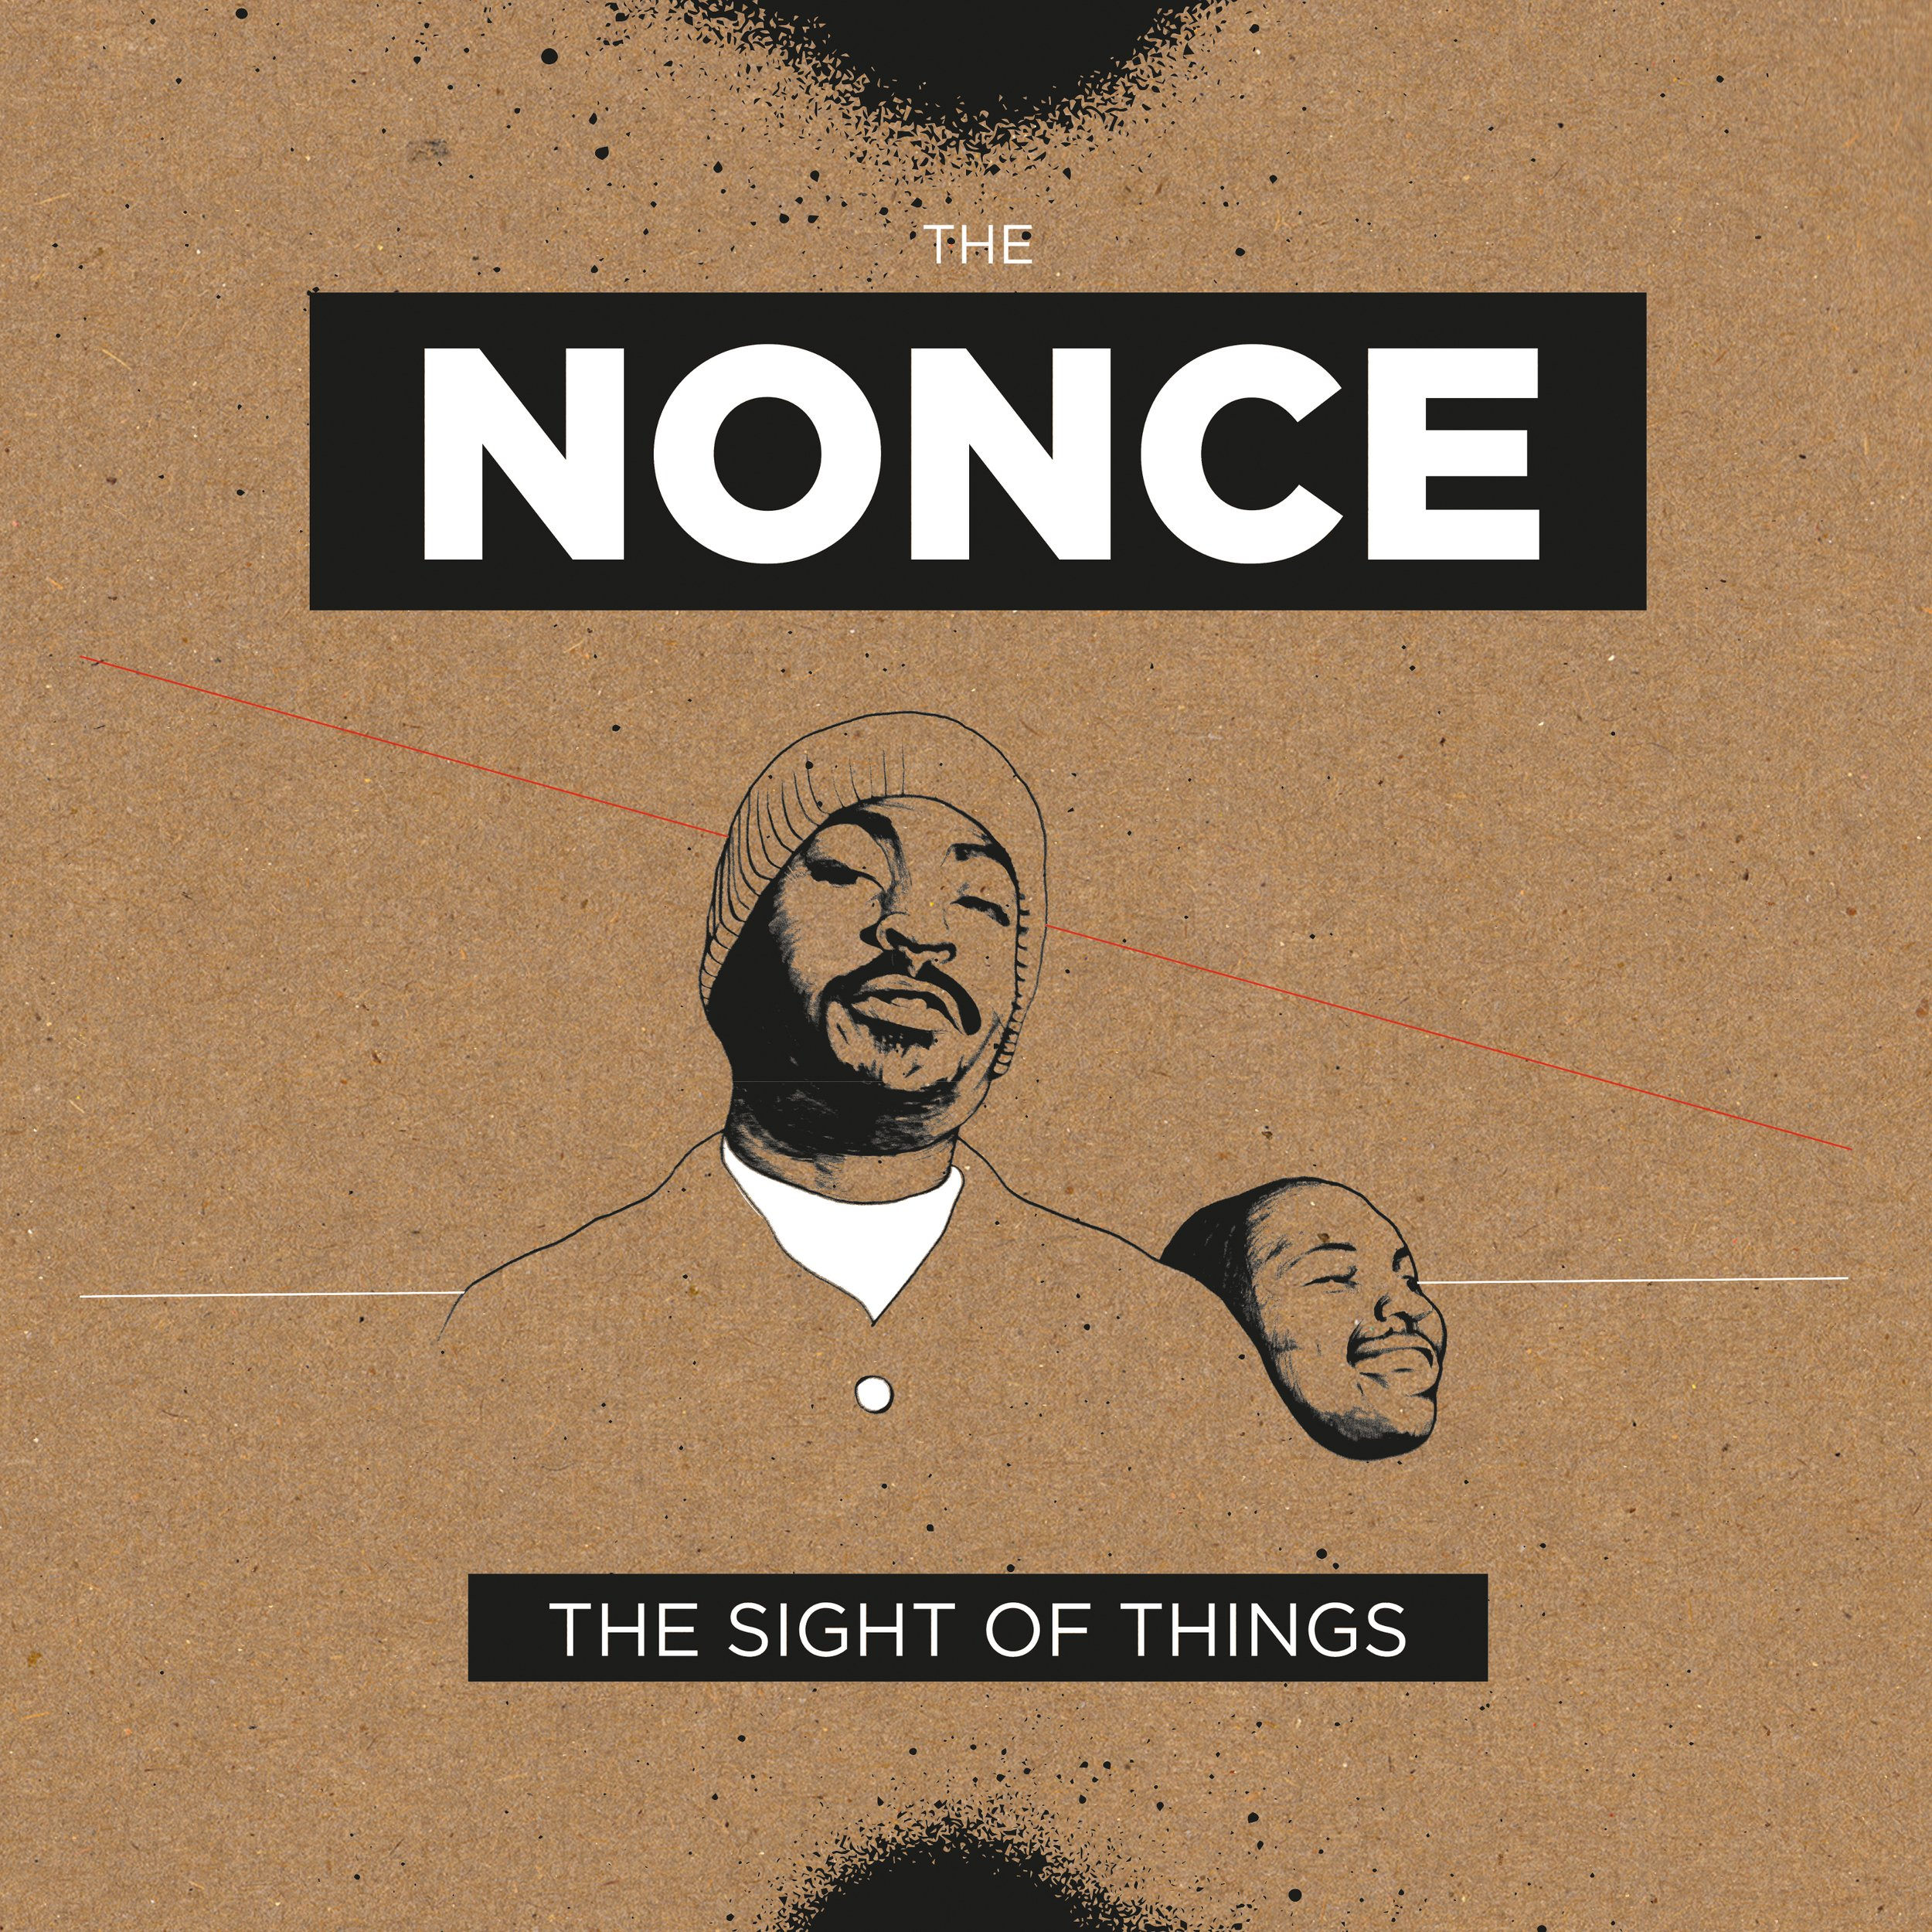 The Nonce - The Sight of Things (2021) [FLAC] Download